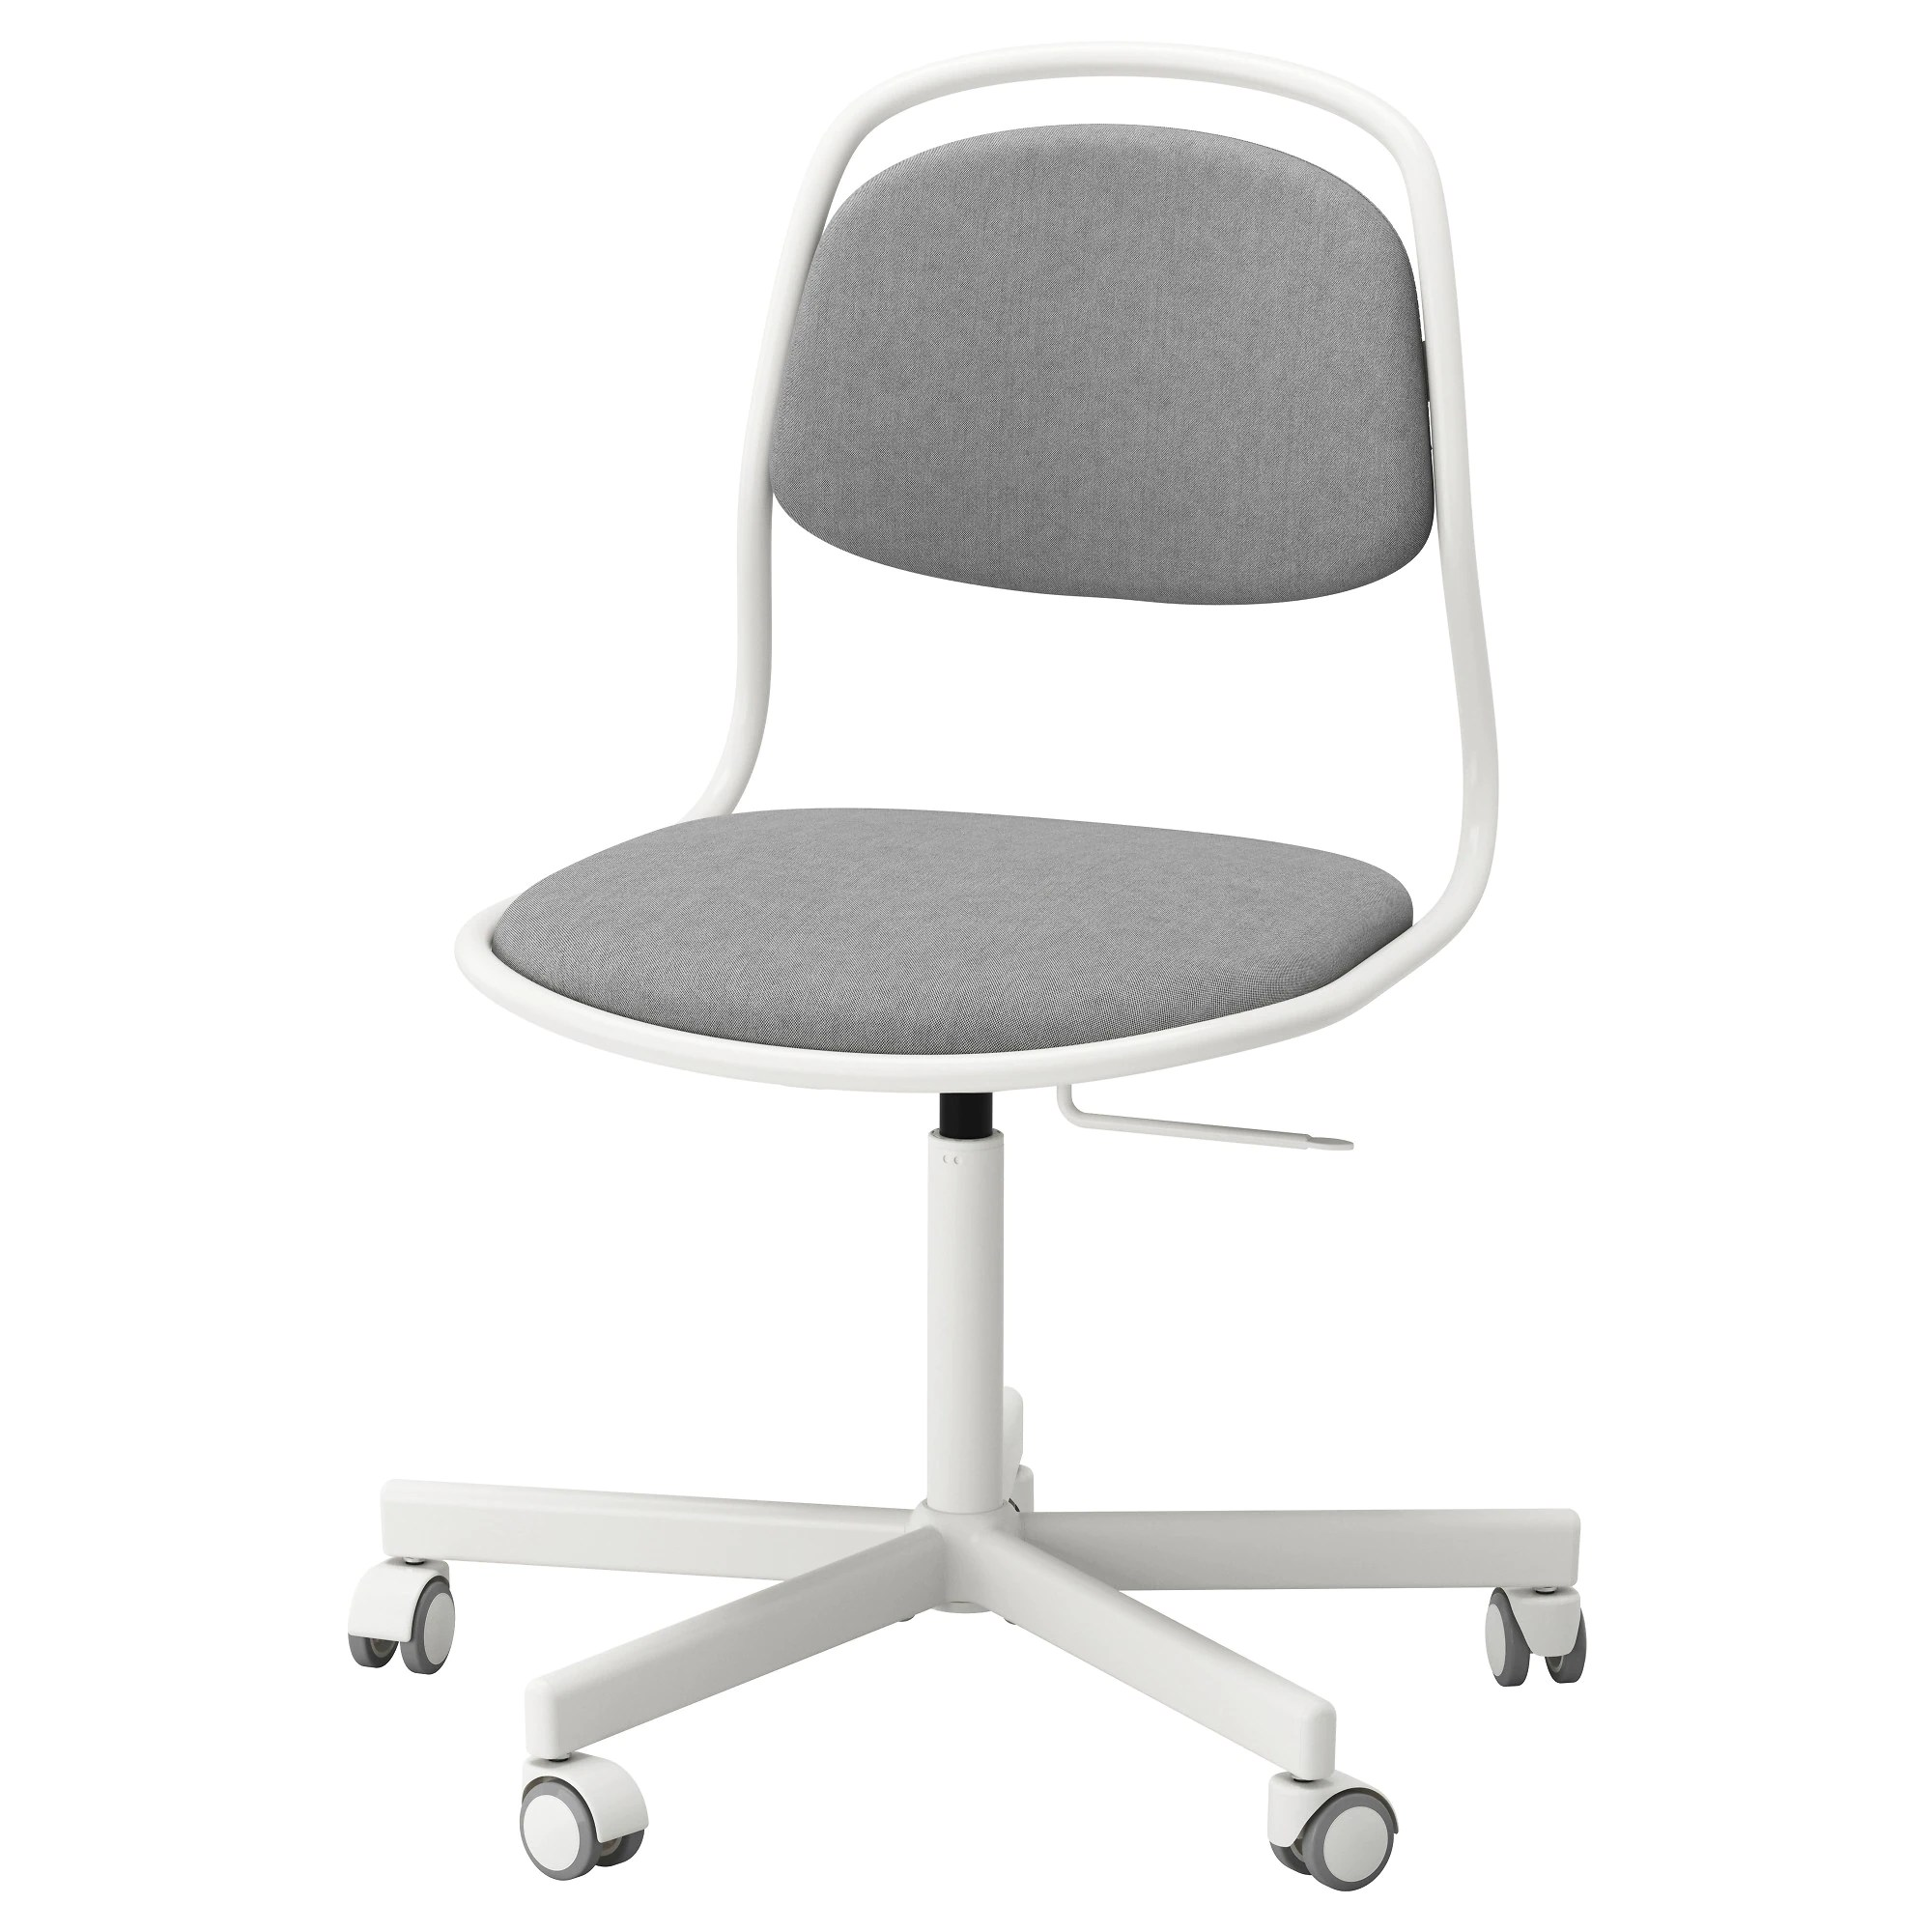 ikea rolling chair best tailgate chairs orfjall sporren swivel white vissle light gray inter systems b v 1999 2018 privacy policy responsible disclosure